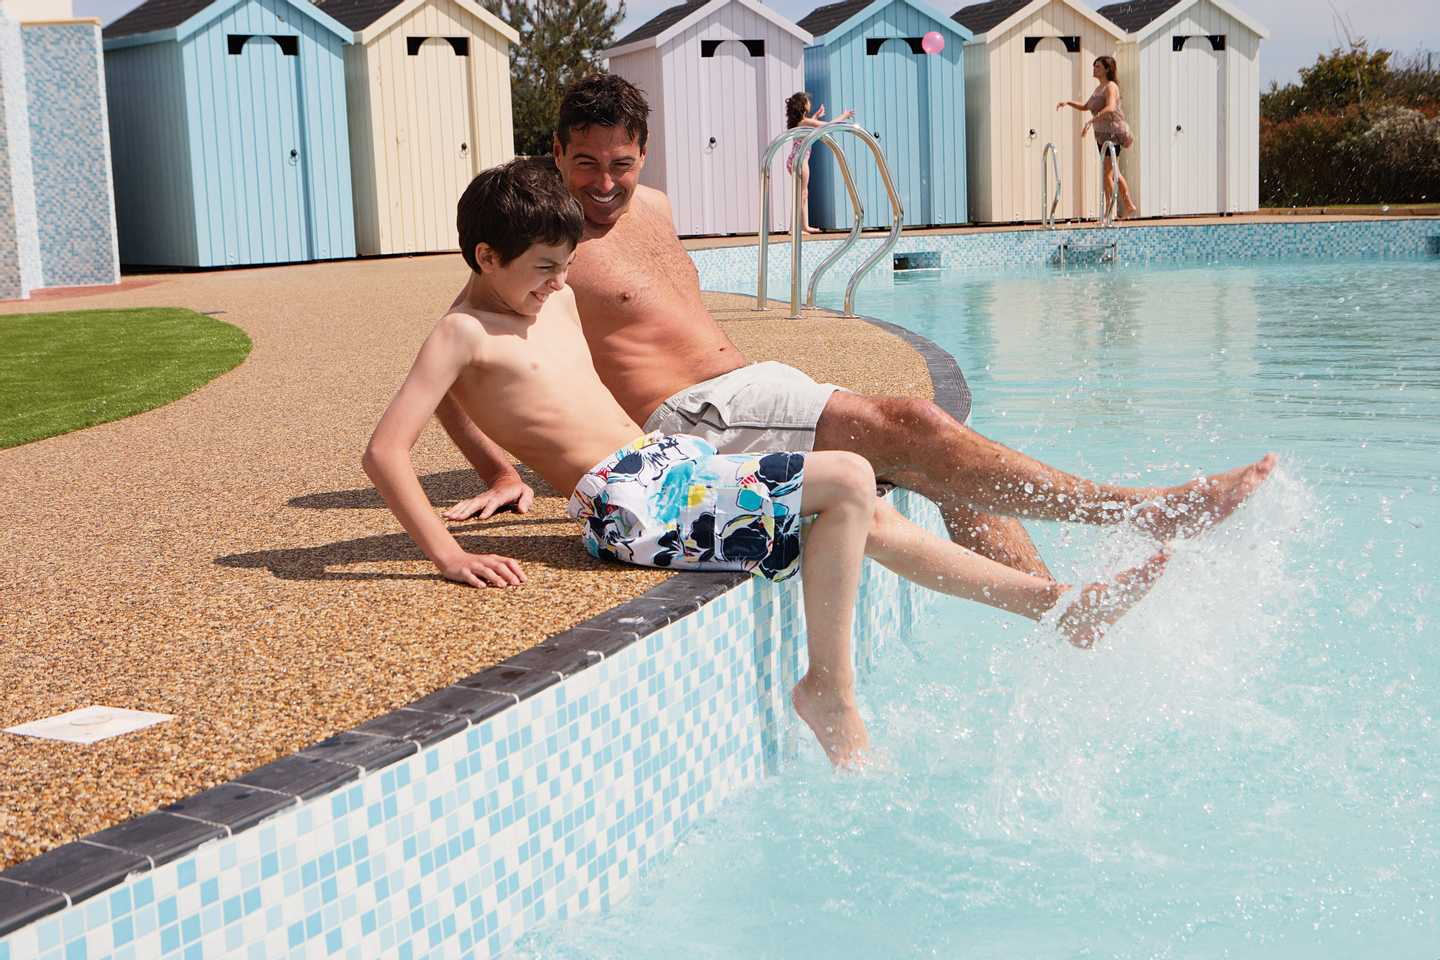 Father and son kicking their feet in the heated outdoor pool